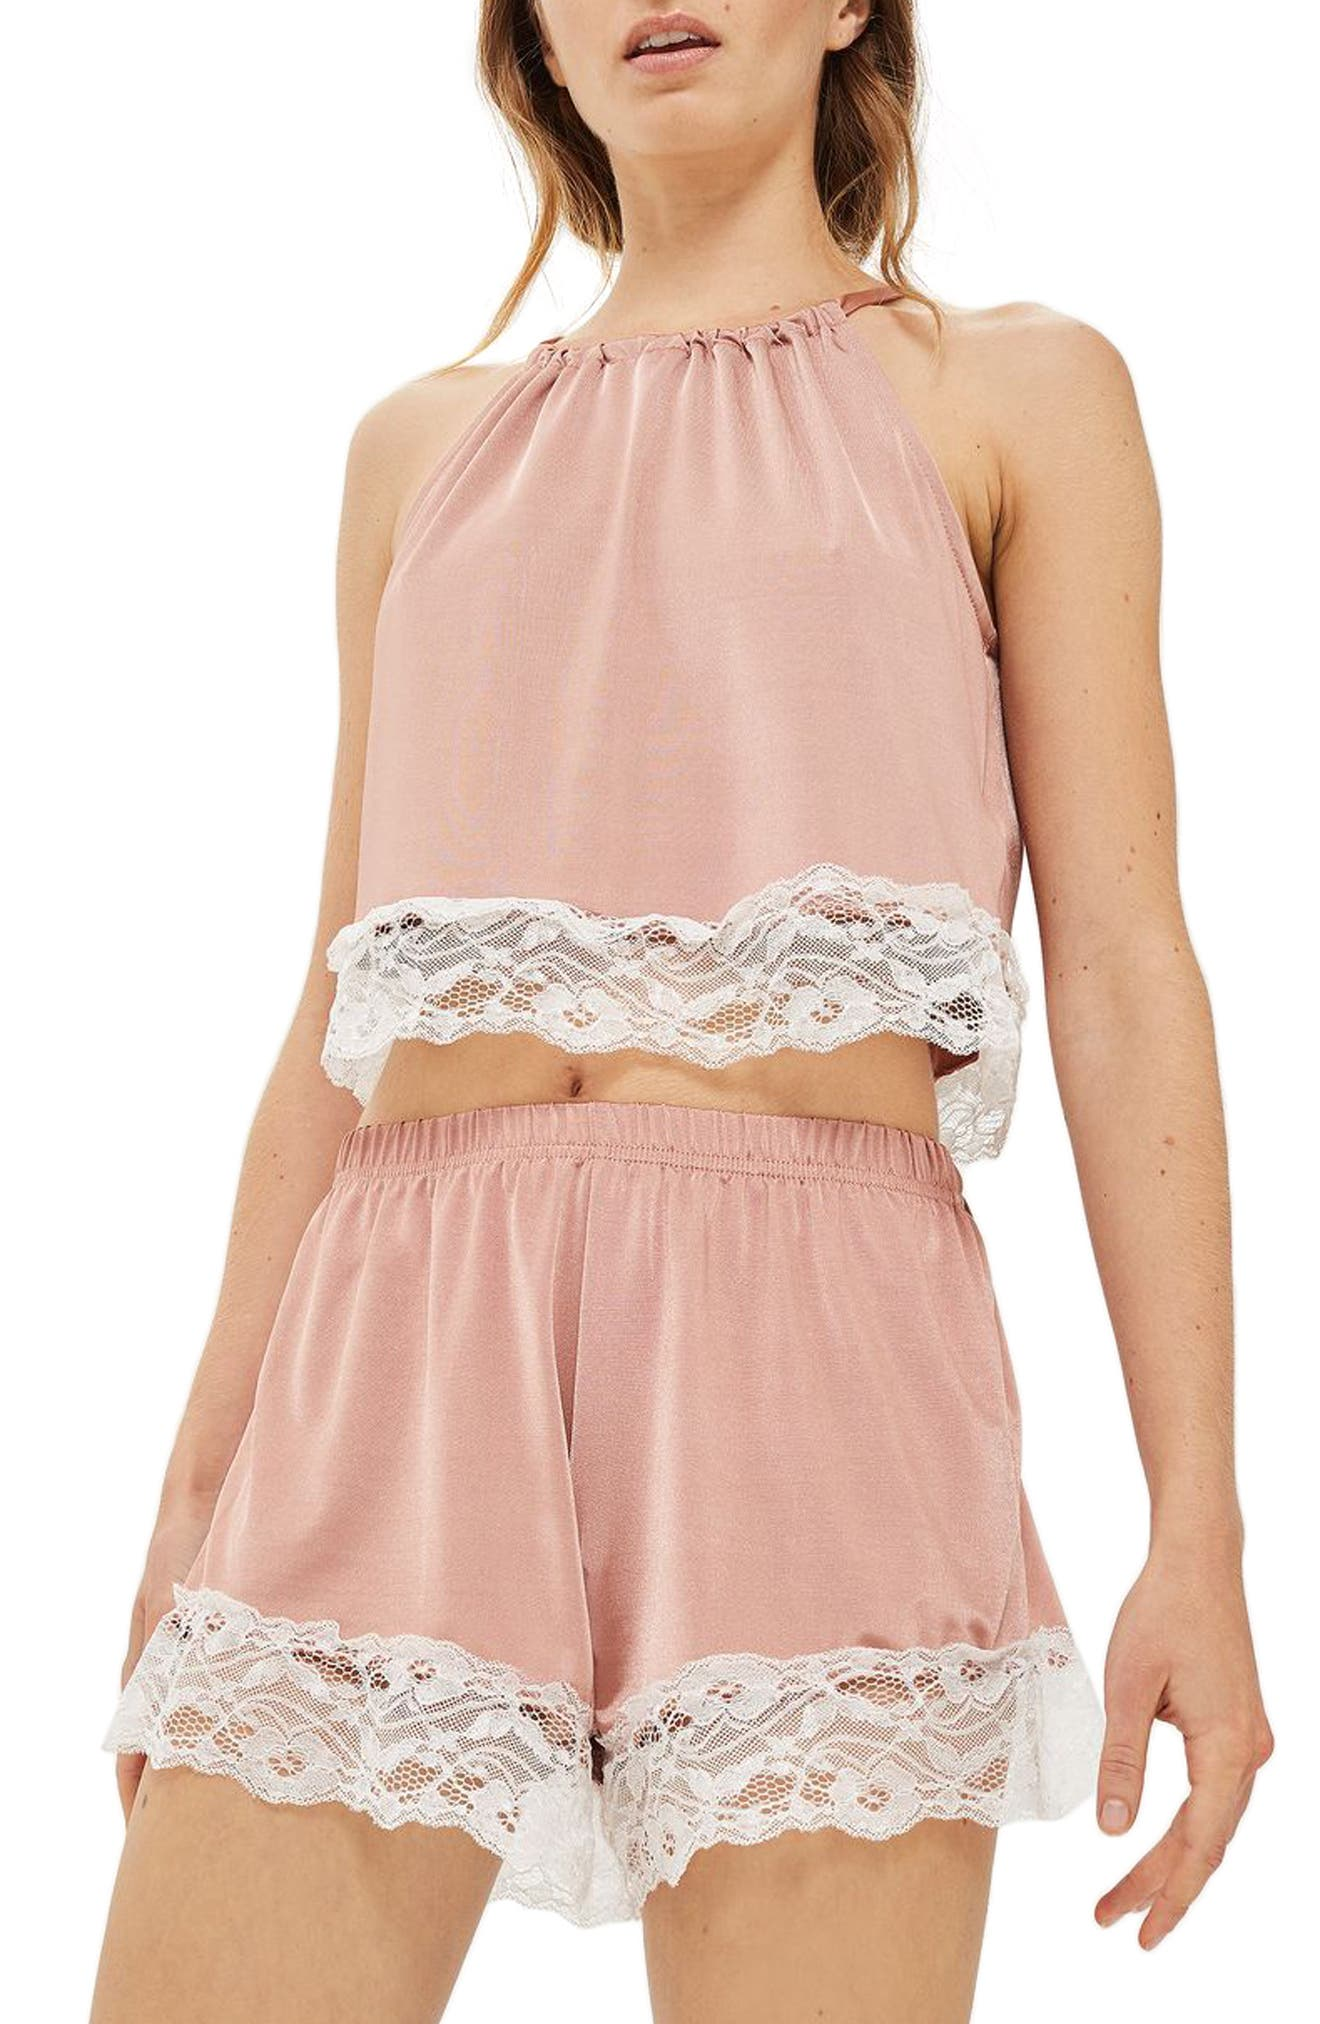 Alternate Image 1 Selected - Topshop Satin & Lace Halter Pajama Top